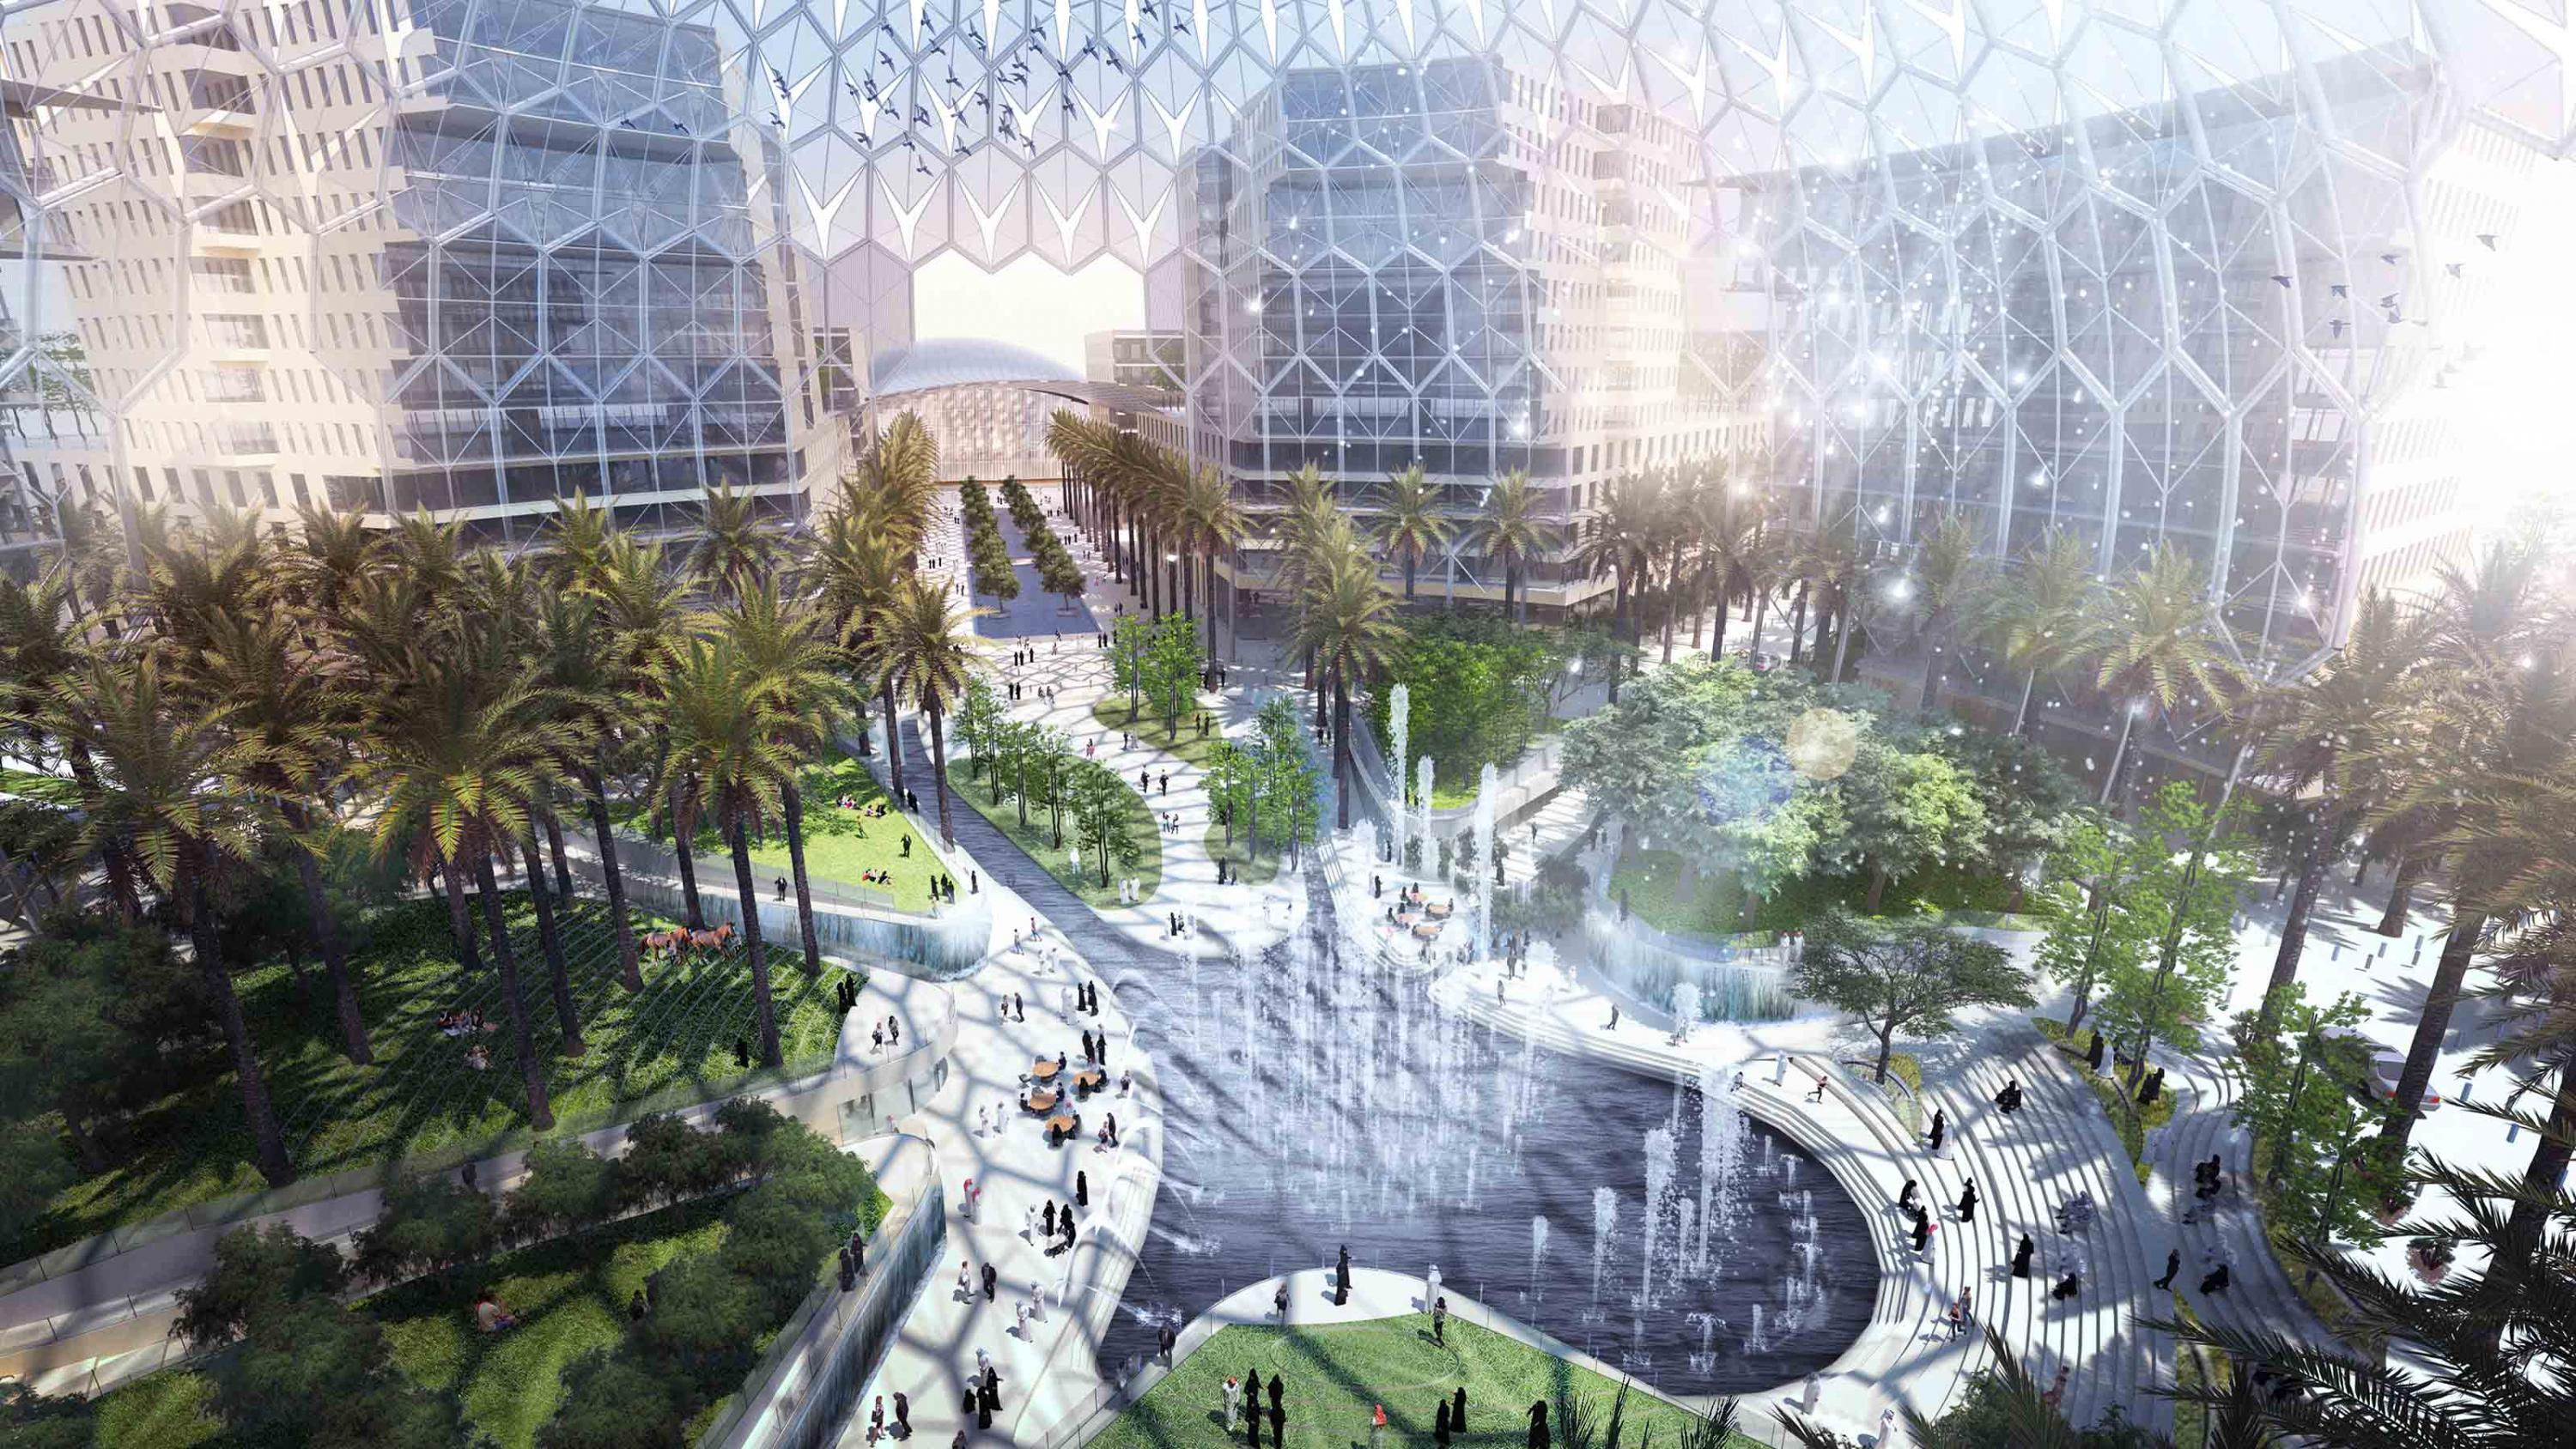 Expo 2020 Dubai: Here's Everything You Need to Know About the World's Greatest Show